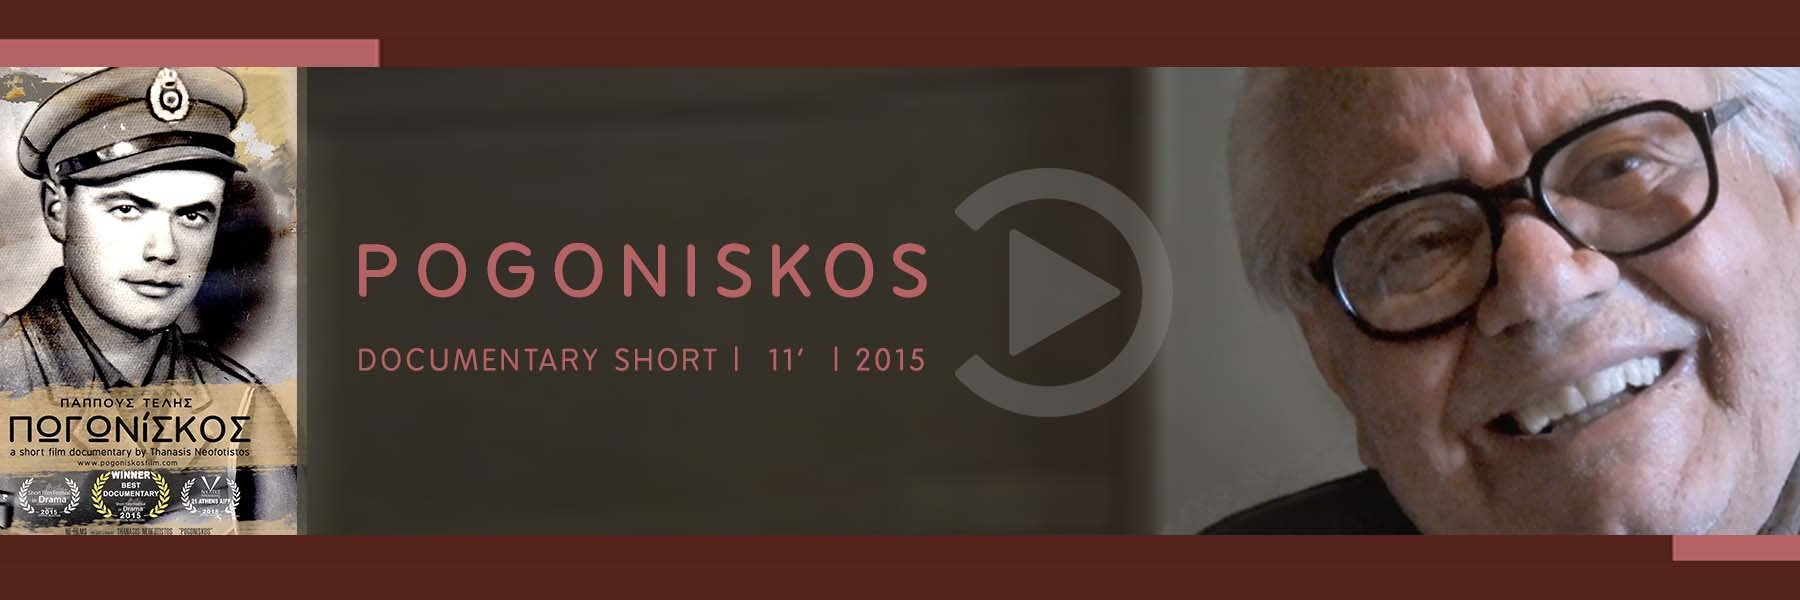 POGONISKOS | Short Film Documentary by Thanasis Neofotistos